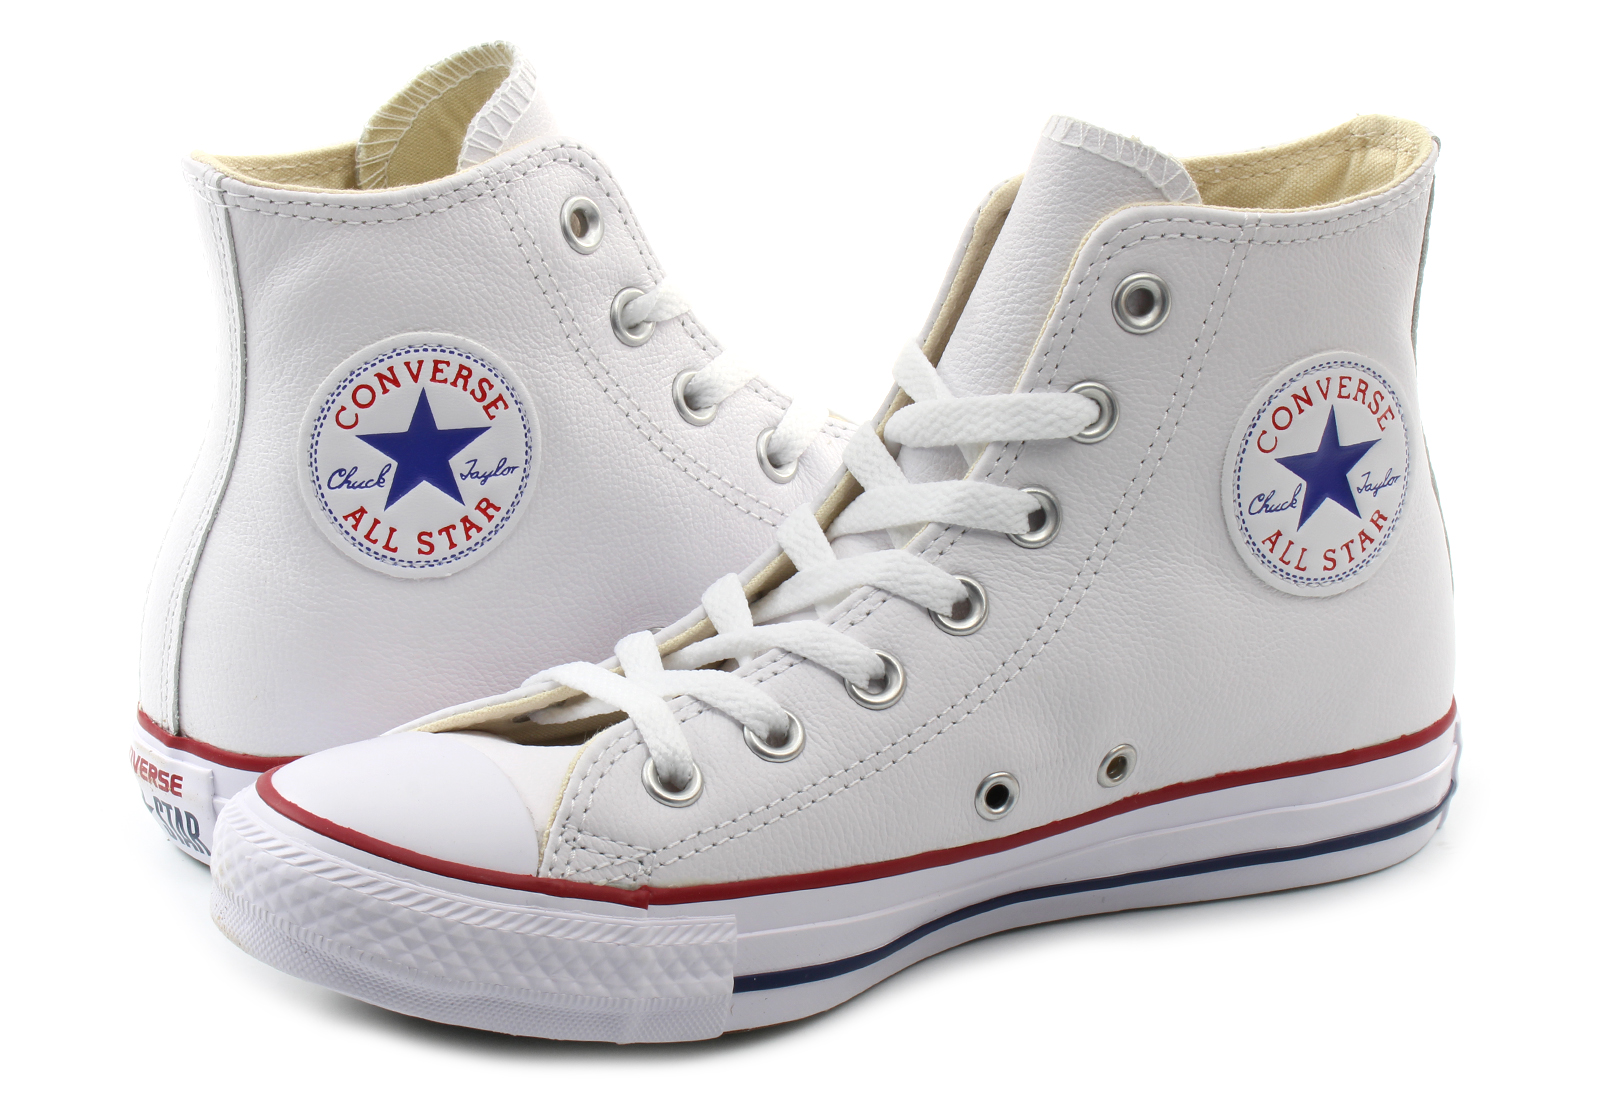 Converse Tornacipő - Ct As Core Leather Hi - 132169c - Office Shoes ... 5d593da322